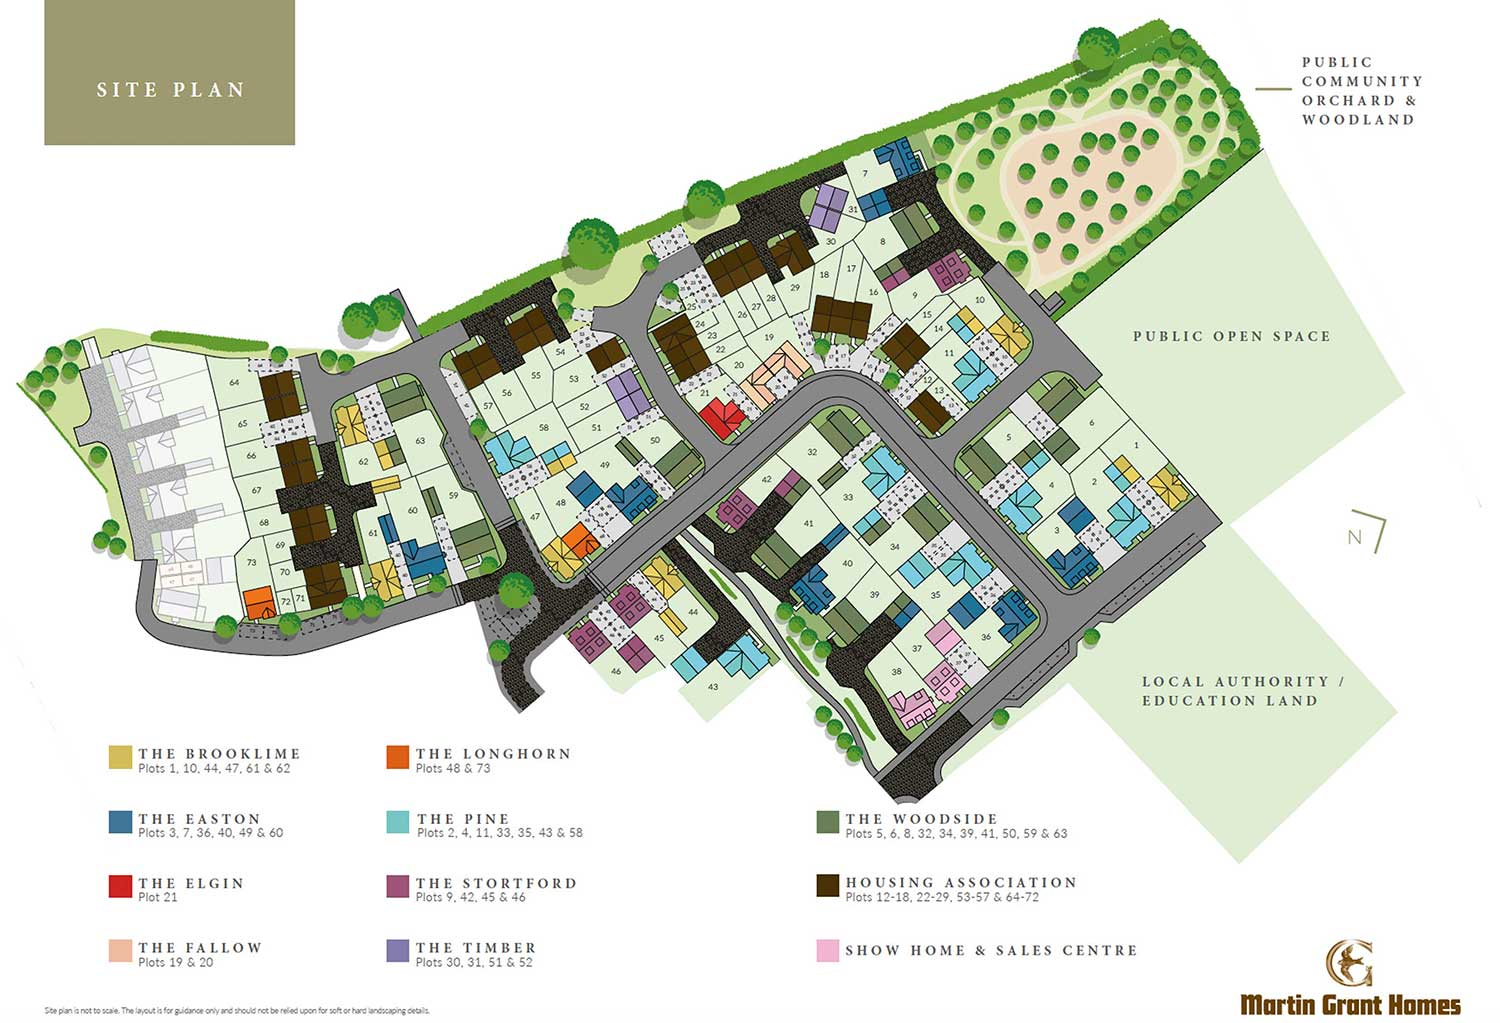 Plot 8 – The Woodside Siteplan